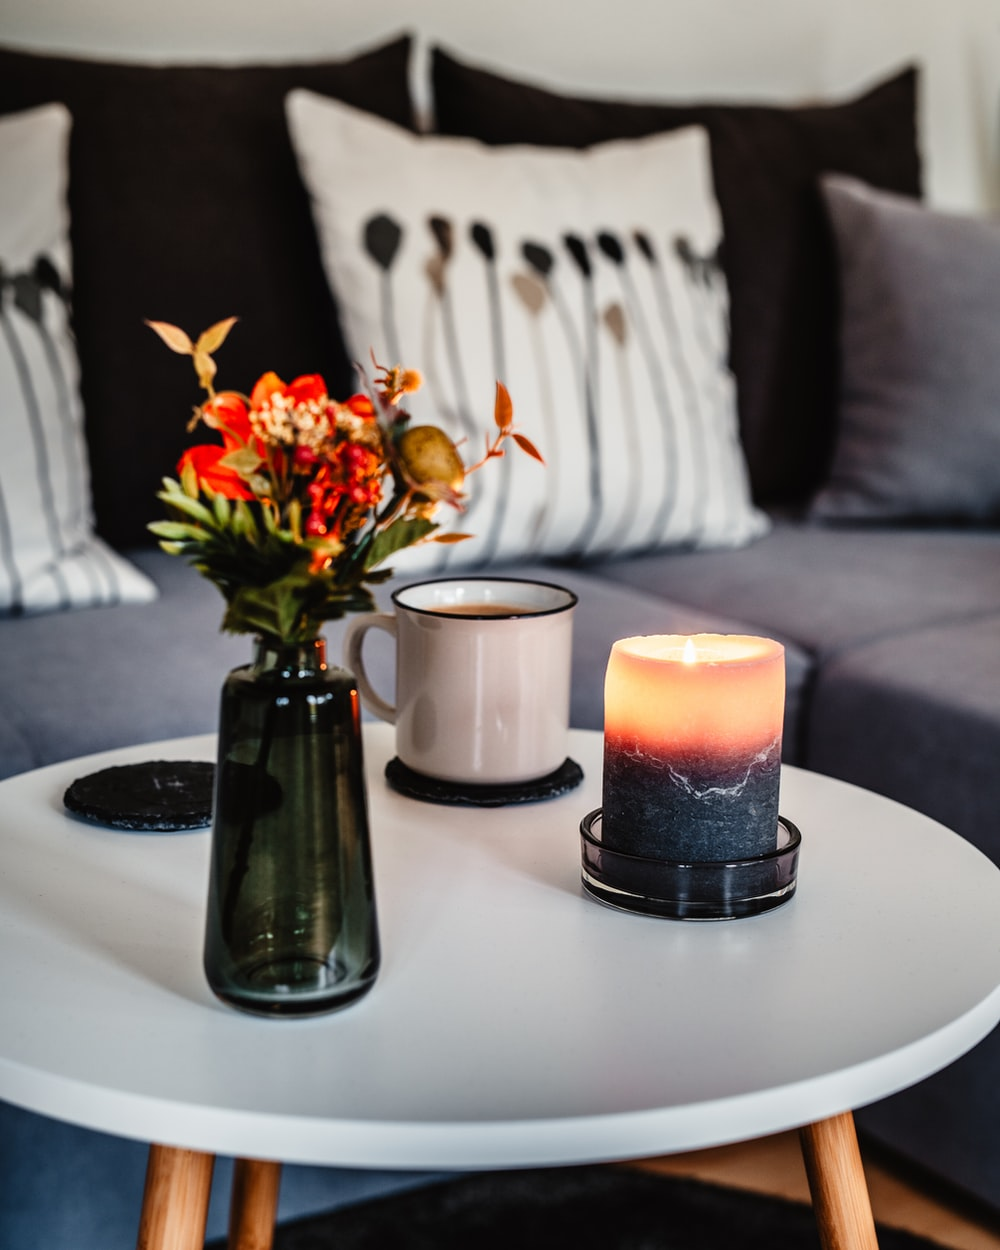 orange flower inside glass vase , lighted candle and white mug on round table